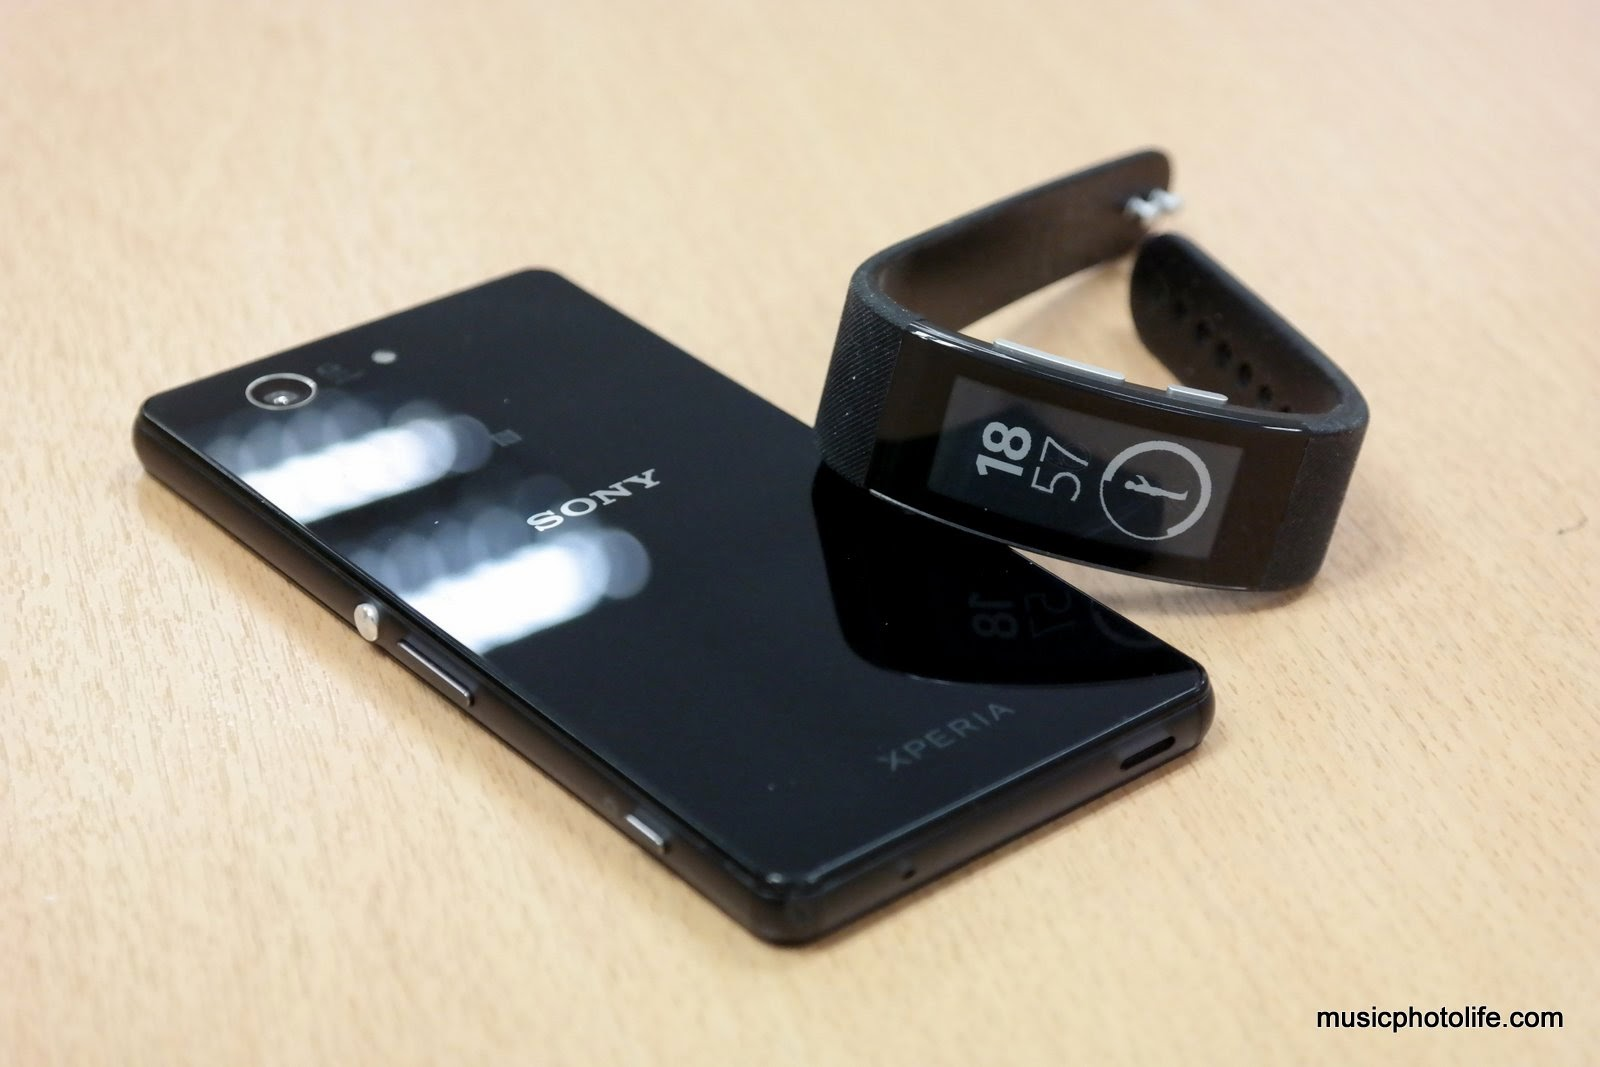 Sony SmartBand Talk SWR30 Review: More Band, Less Watch